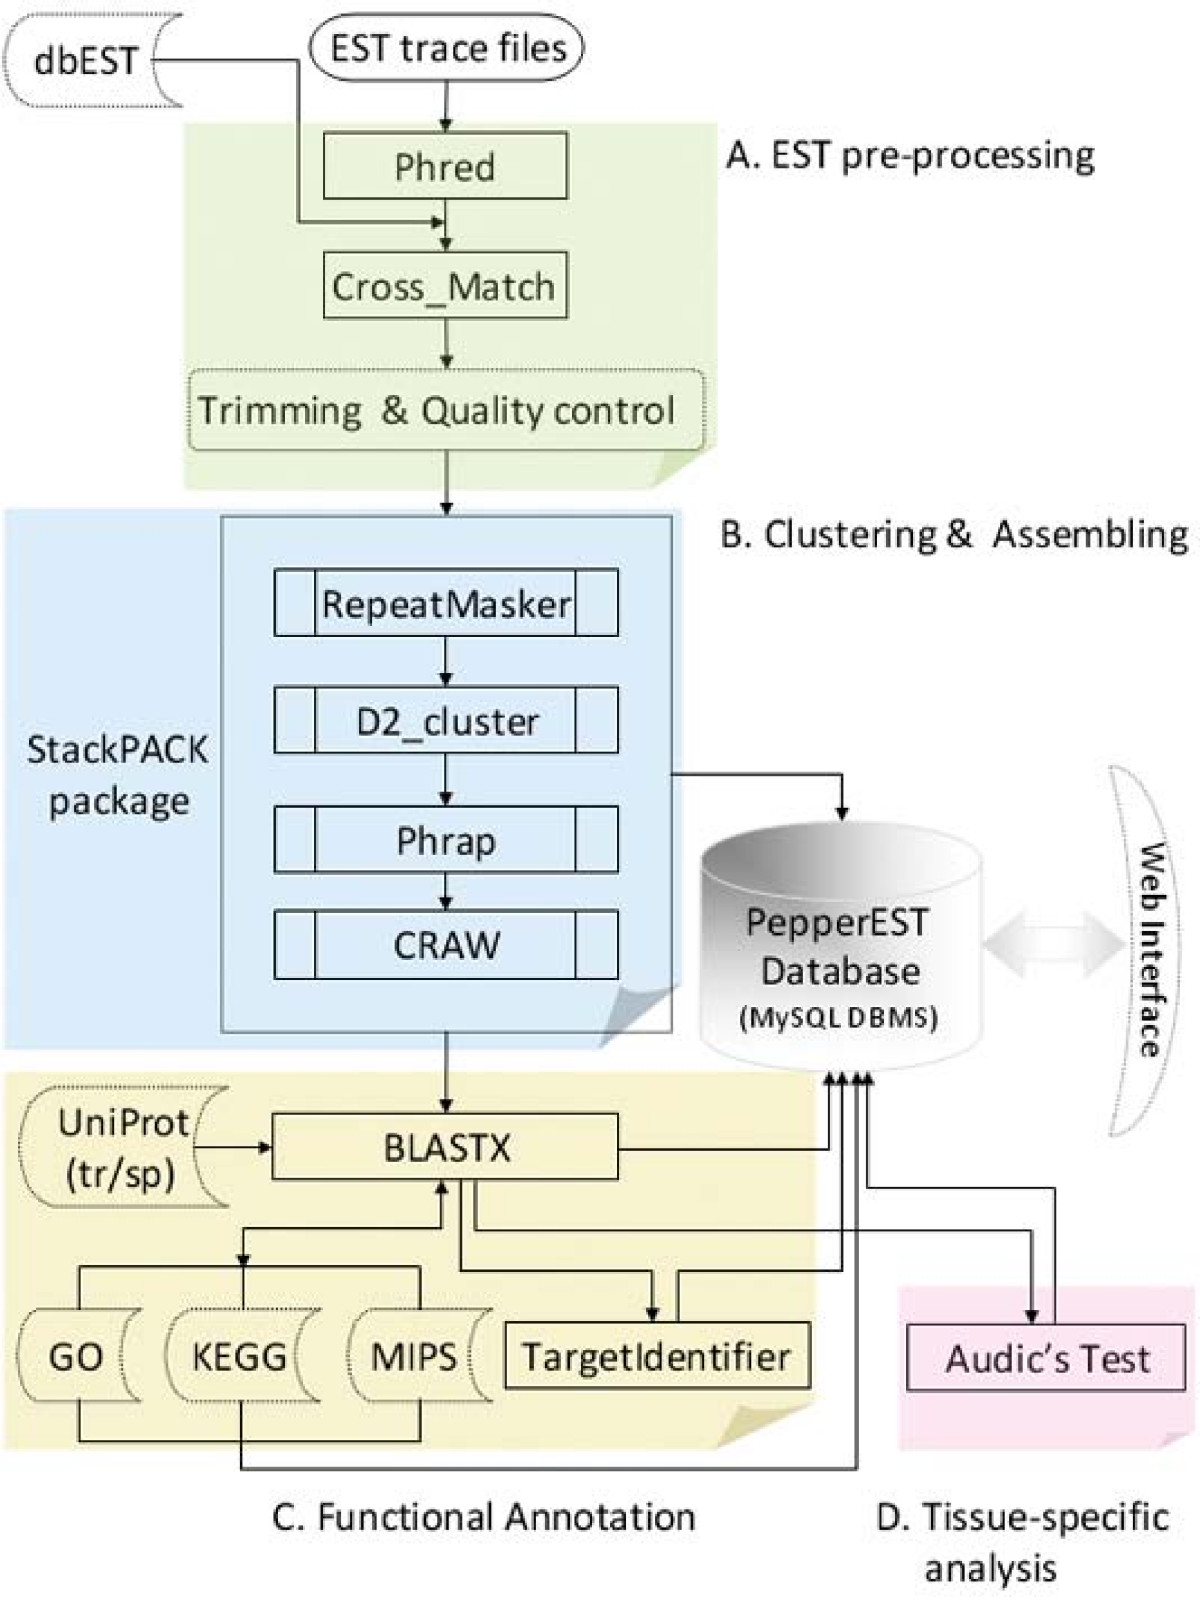 https://static-content.springer.com/image/art%3A10.1186%2F1471-2229-8-101/MediaObjects/12870_2008_Article_309_Fig1_HTML.jpg